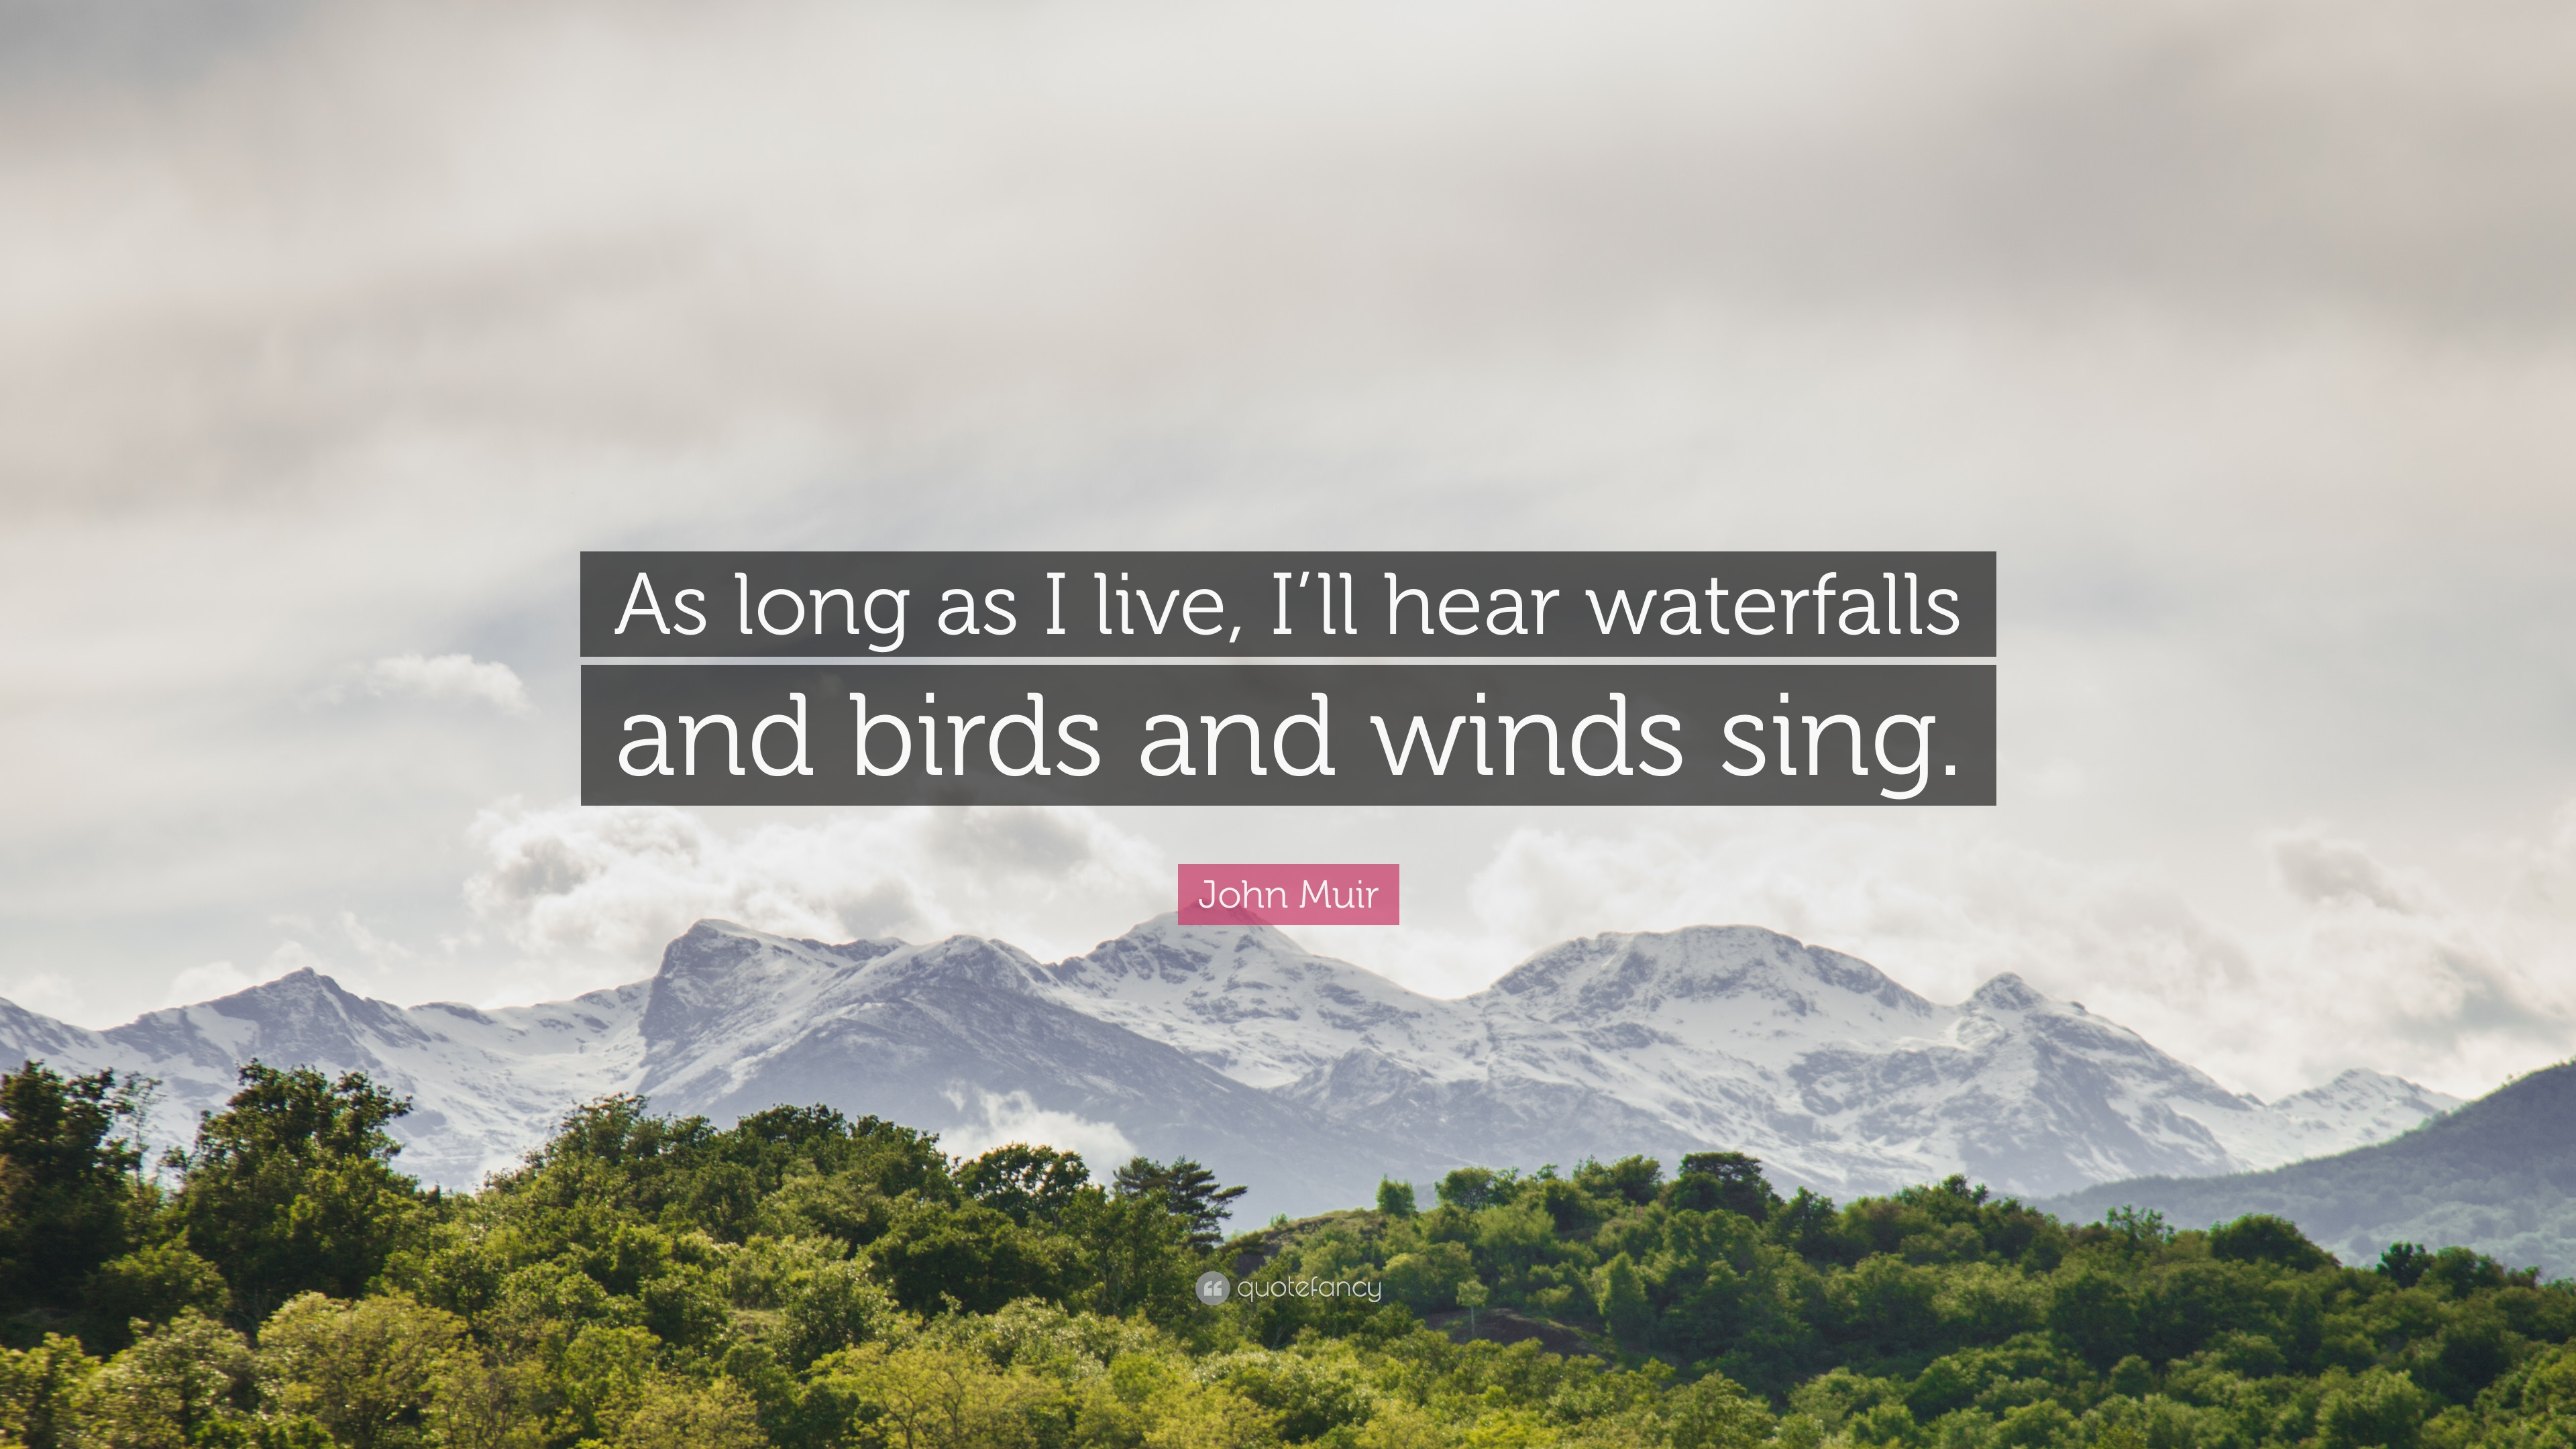 John Muir Quote As Long As I Live Ill Hear Waterfalls And Birds